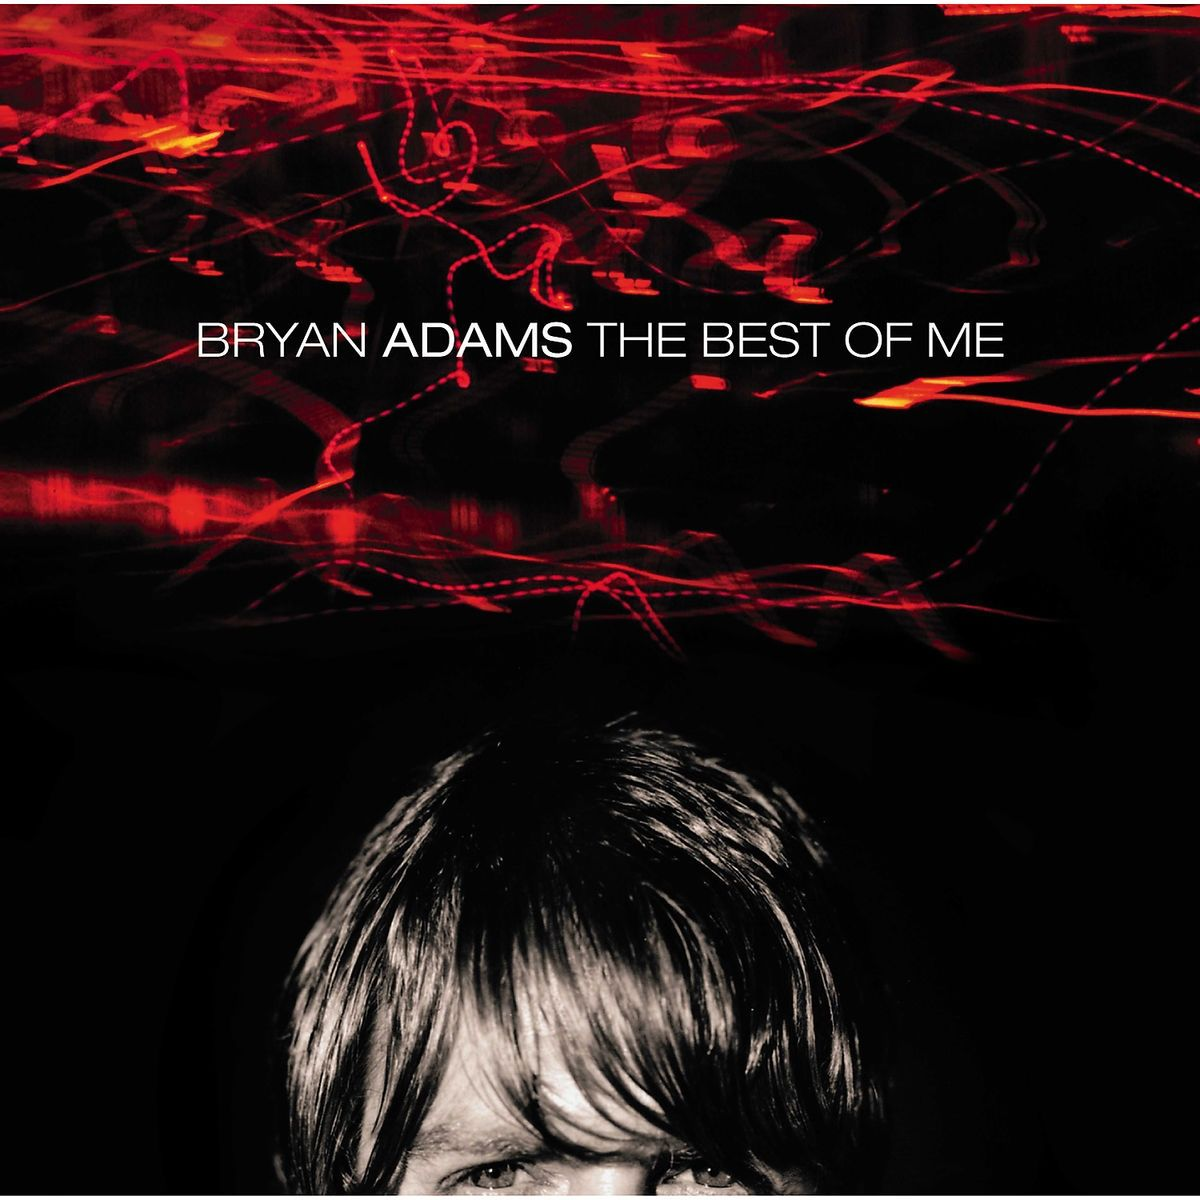 Bryan adams the best of me | releases | discogs.